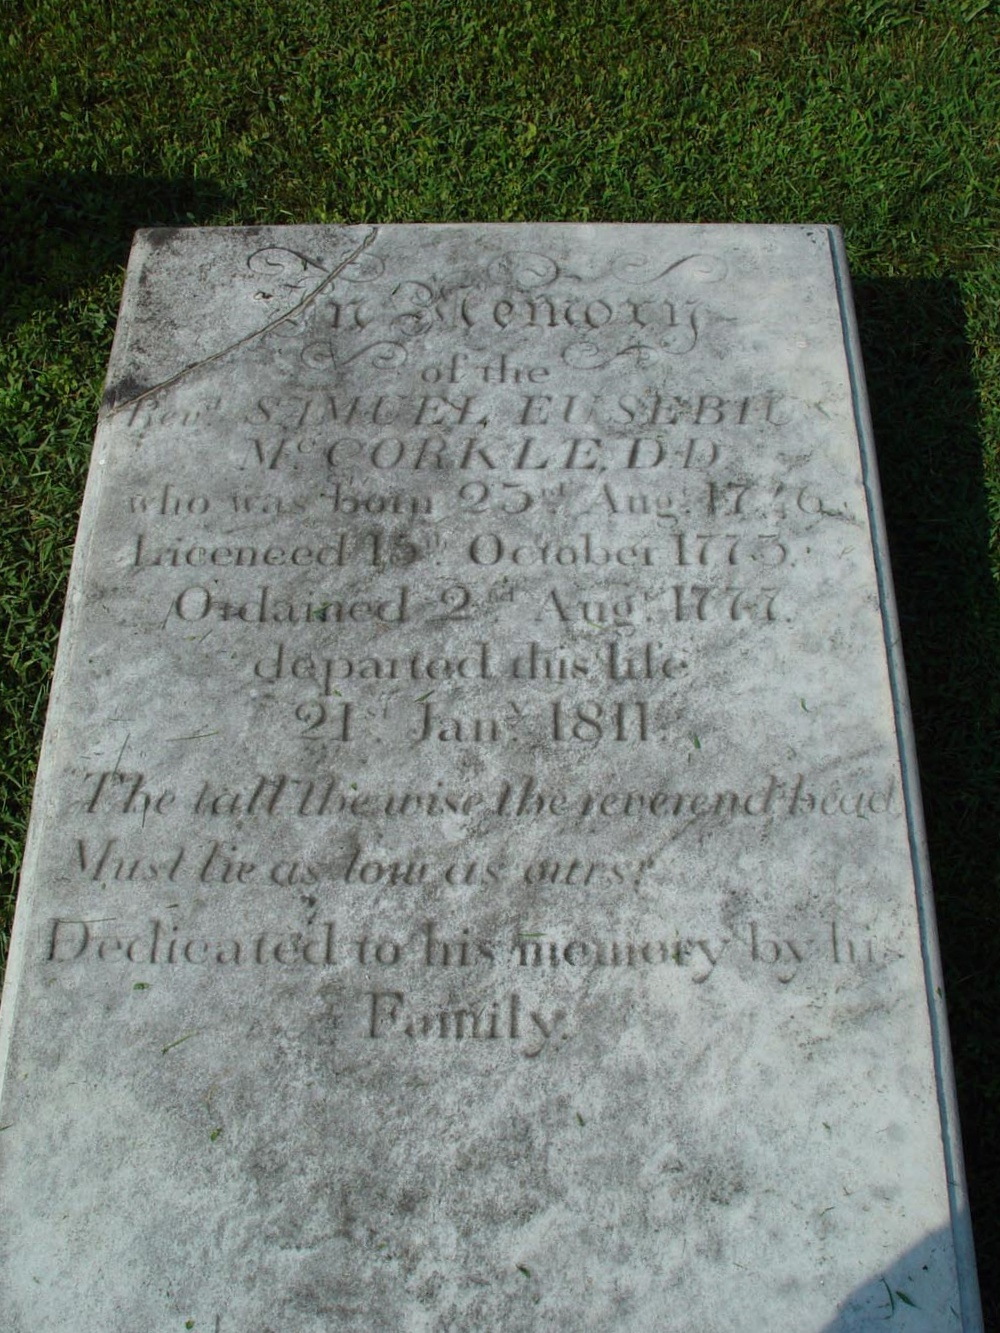 Samuel Eusebius McCorkle is buried at Thyatira Presbyterian Church Cemetery, Mill Bridge, North Carolina.